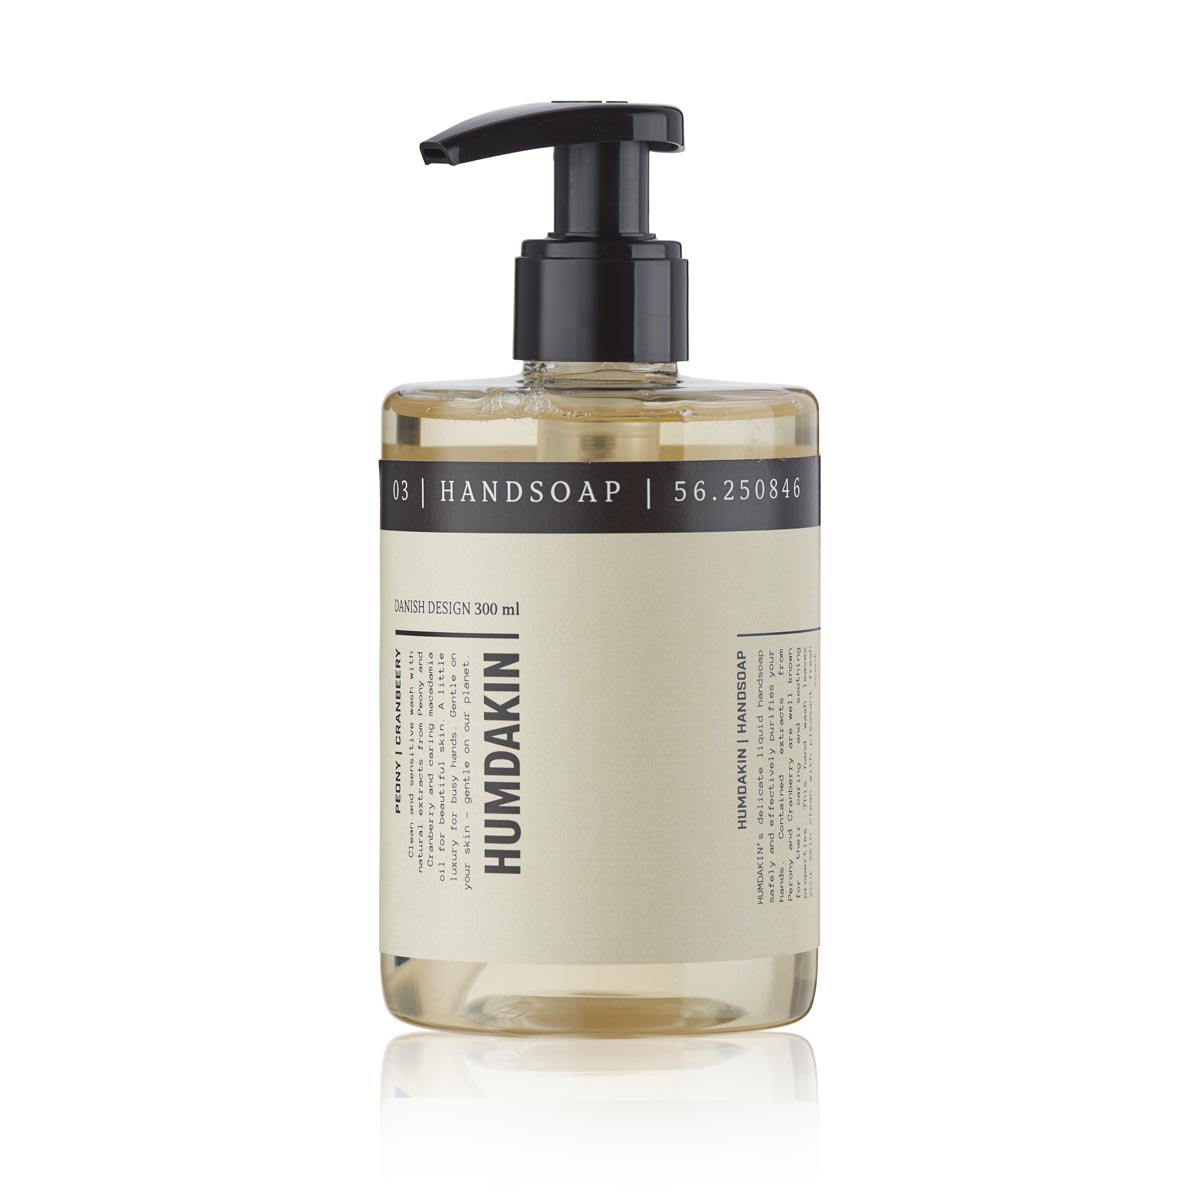 hand-soap-03-granberry-peony